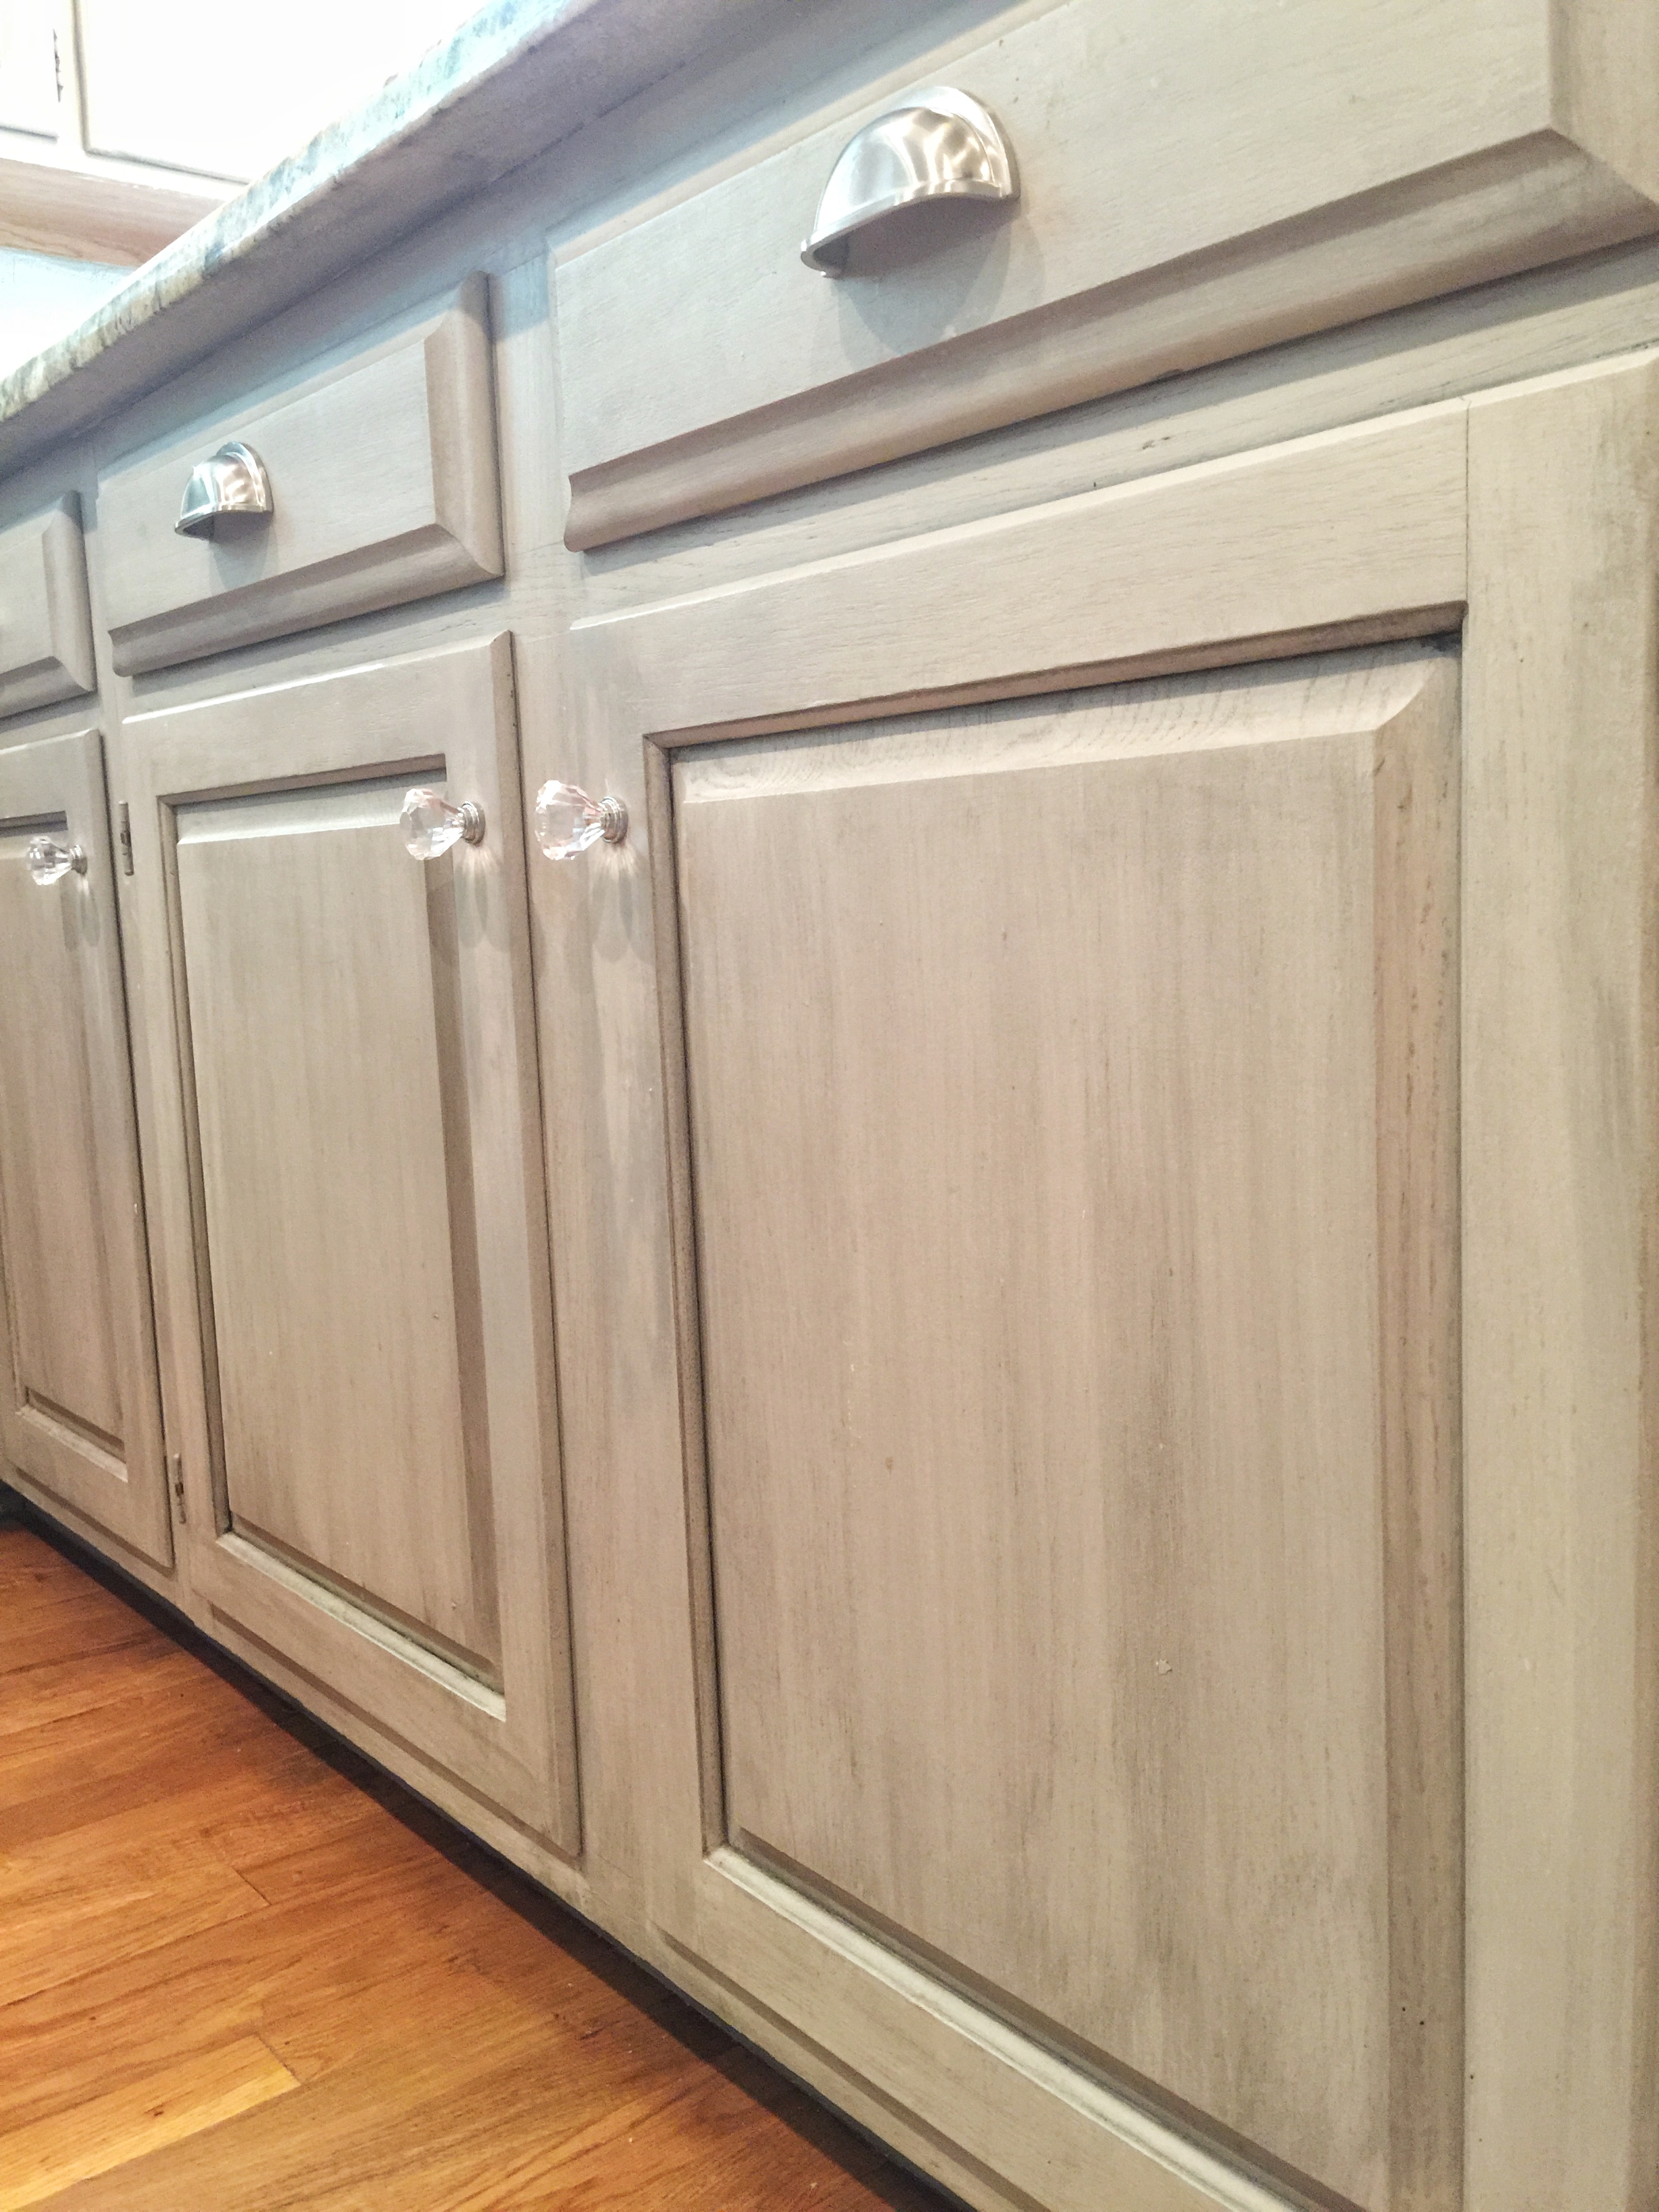 What is cabinet glazing bella tucker decorative finishes - How to glaze kitchen cabinets that are painted ...